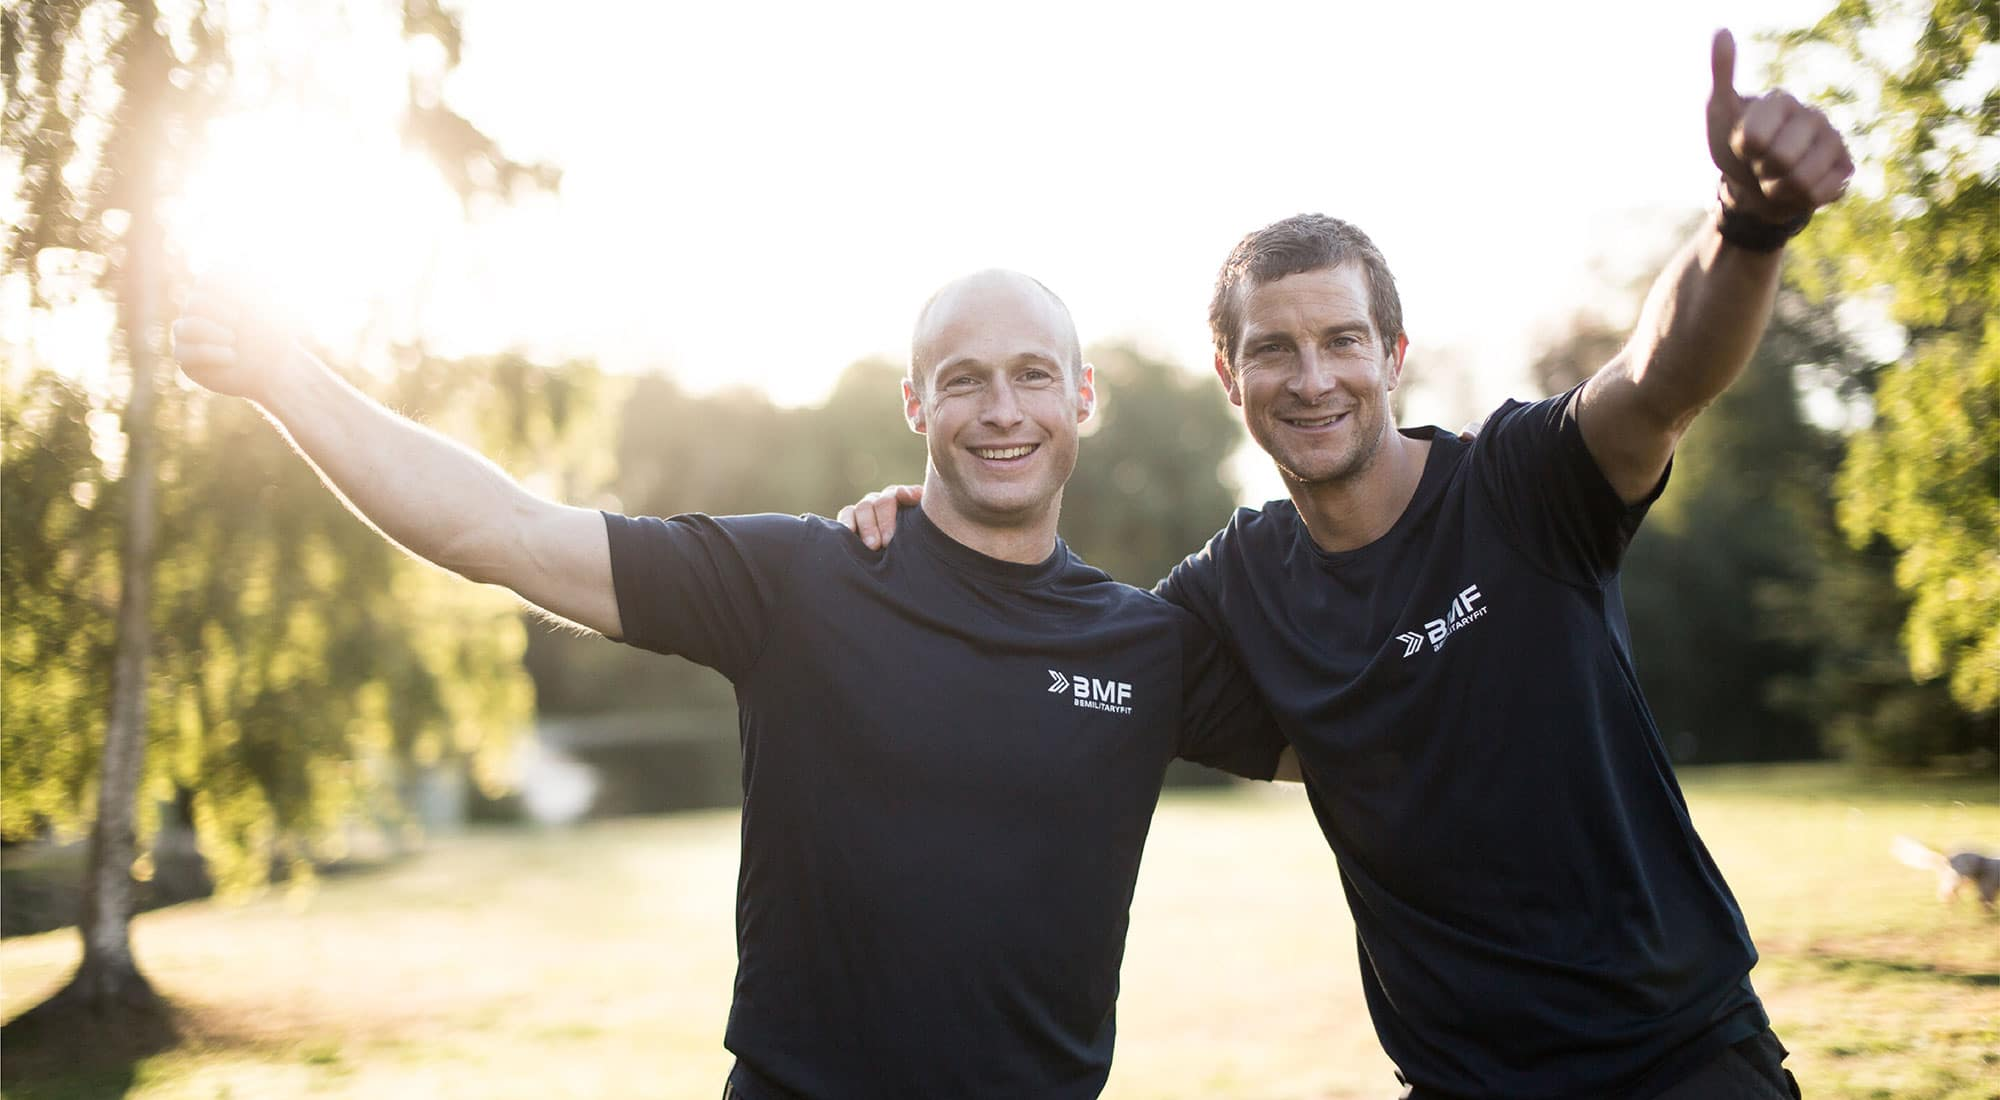 BMF with Bear Grylls to launch #BeActive Hour across Europe in lead up to National Fitness Day 2020